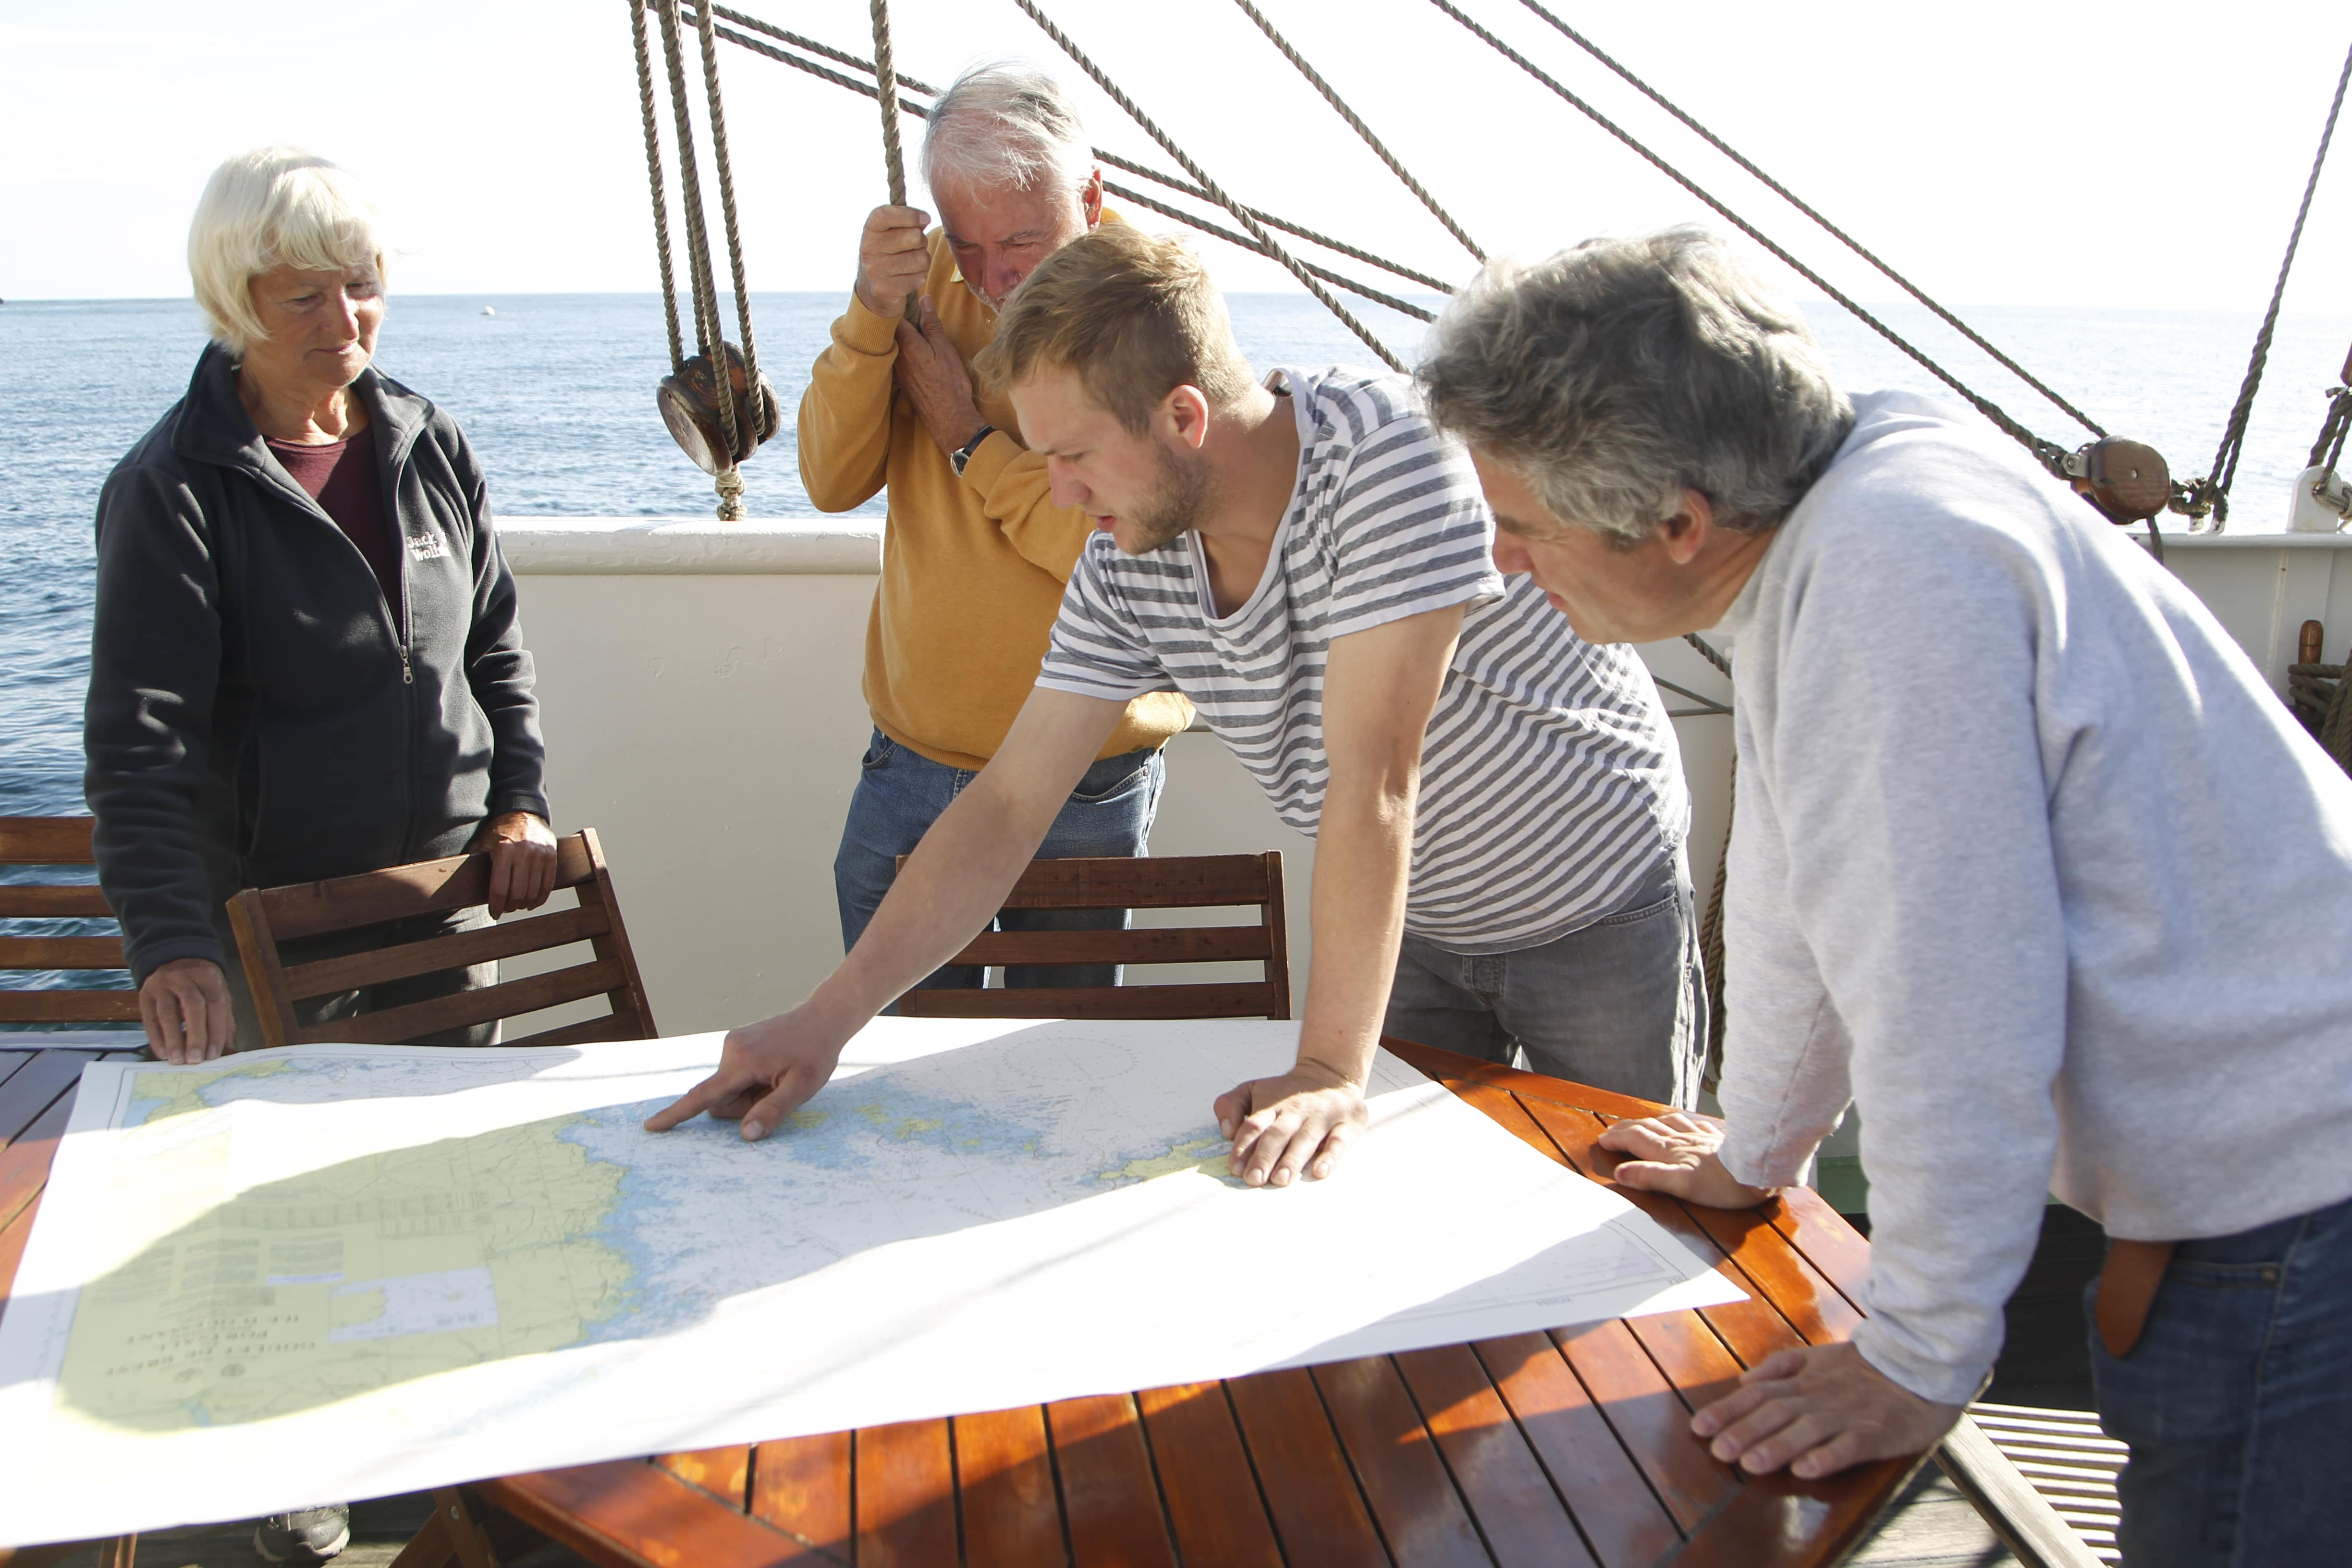 With the nautical chart explains the captain the following sailing maneuvers